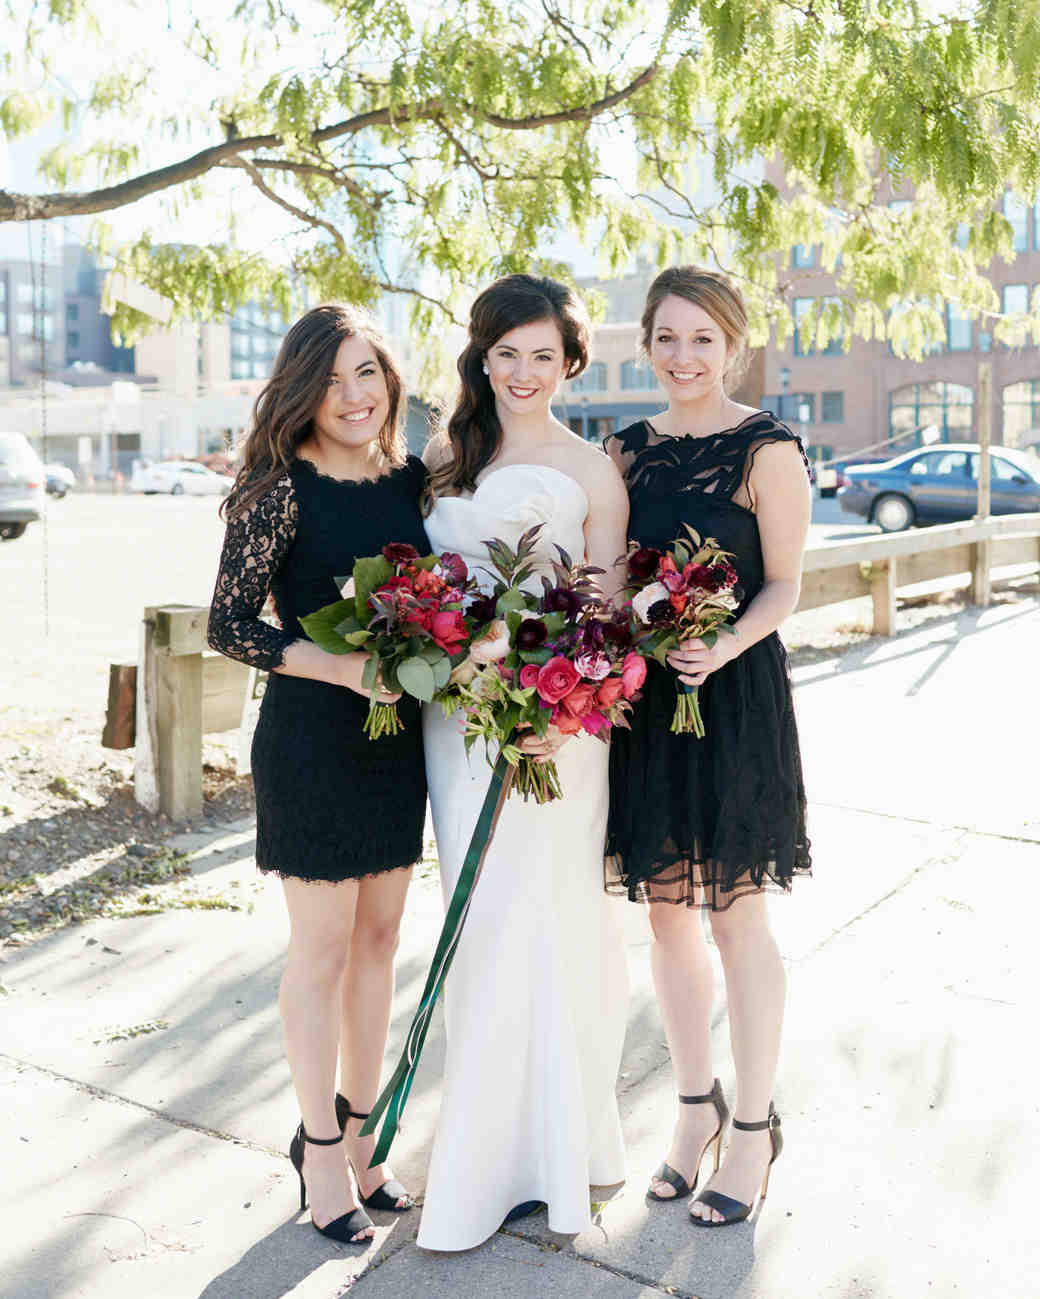 kate-joe-wedding-bridesmaids-0237-s111816-0215.jpg